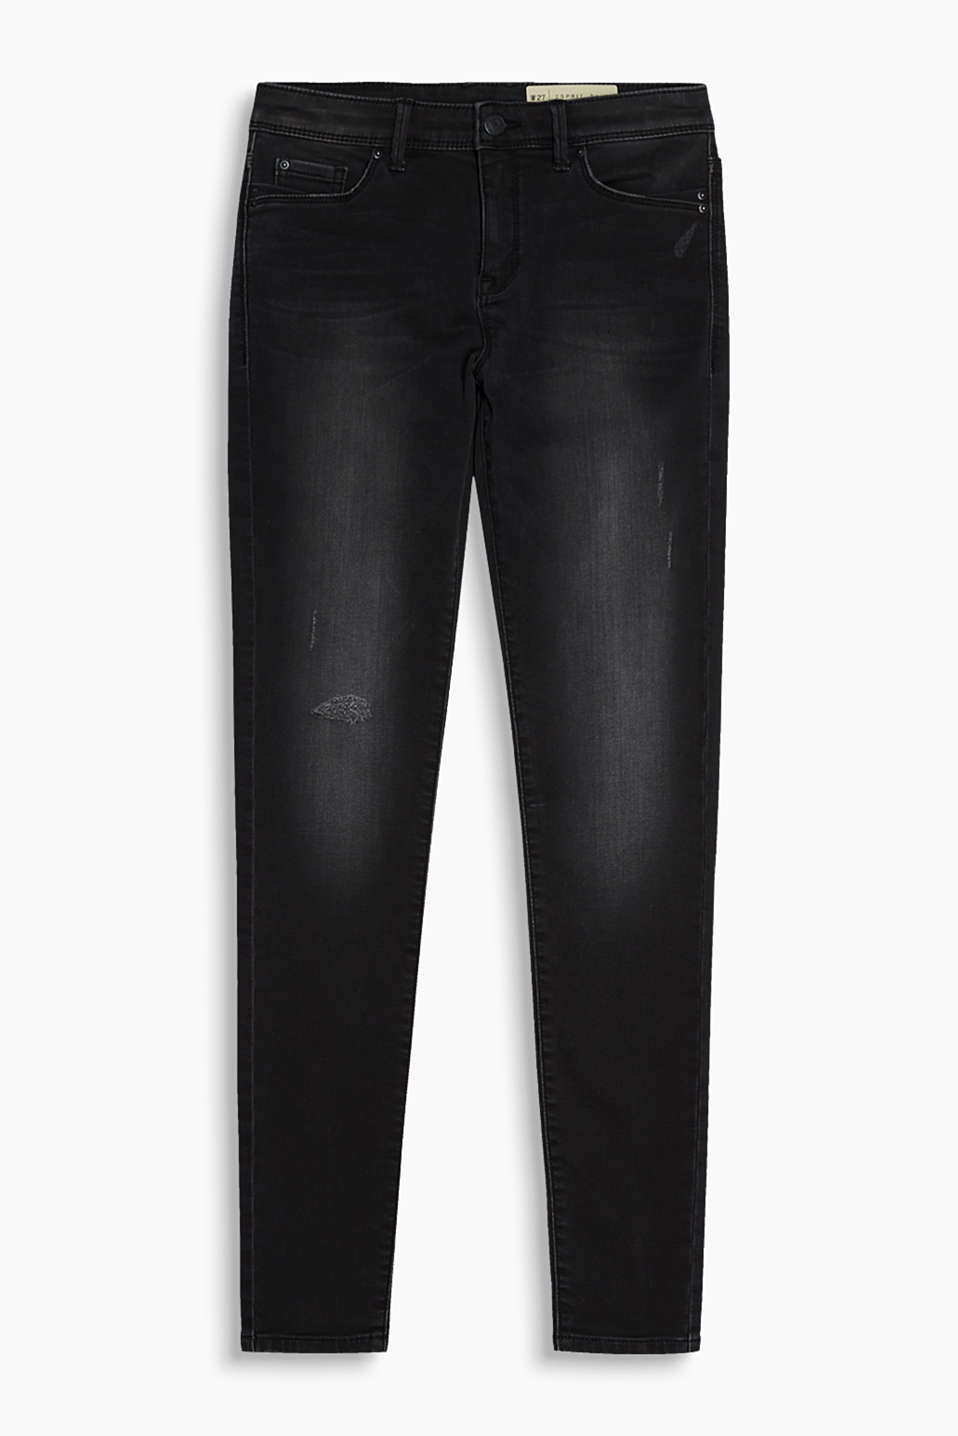 Schmale Black Denim aus Super Stretch